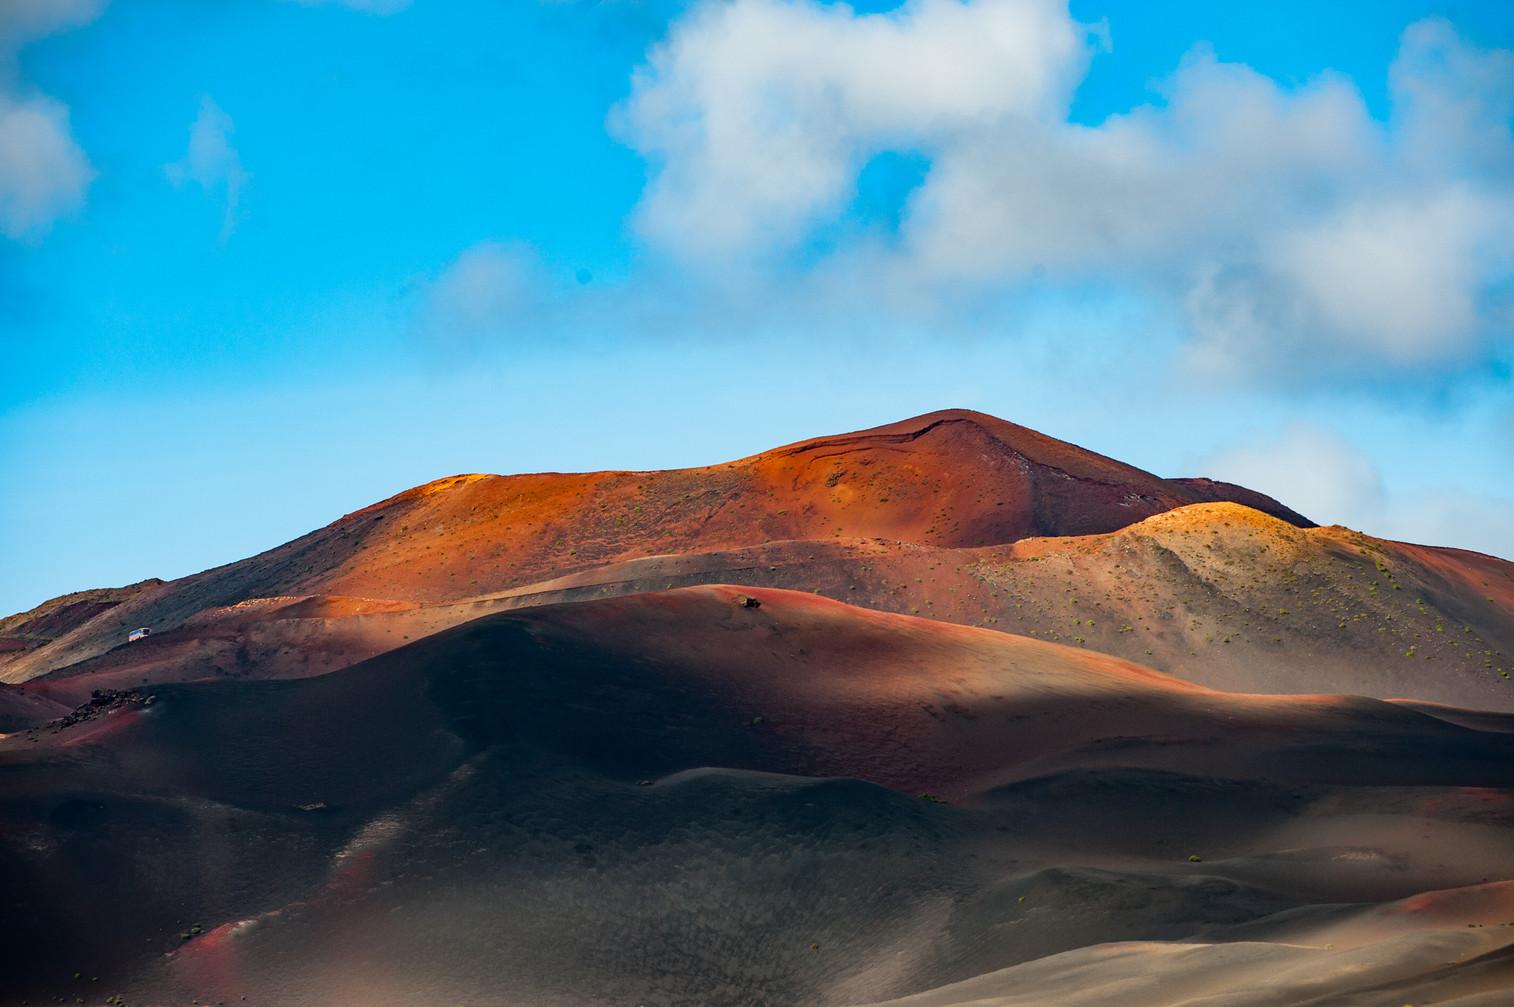 Timanfaya National Park - Lanzarote - Canary Islands (Spain)